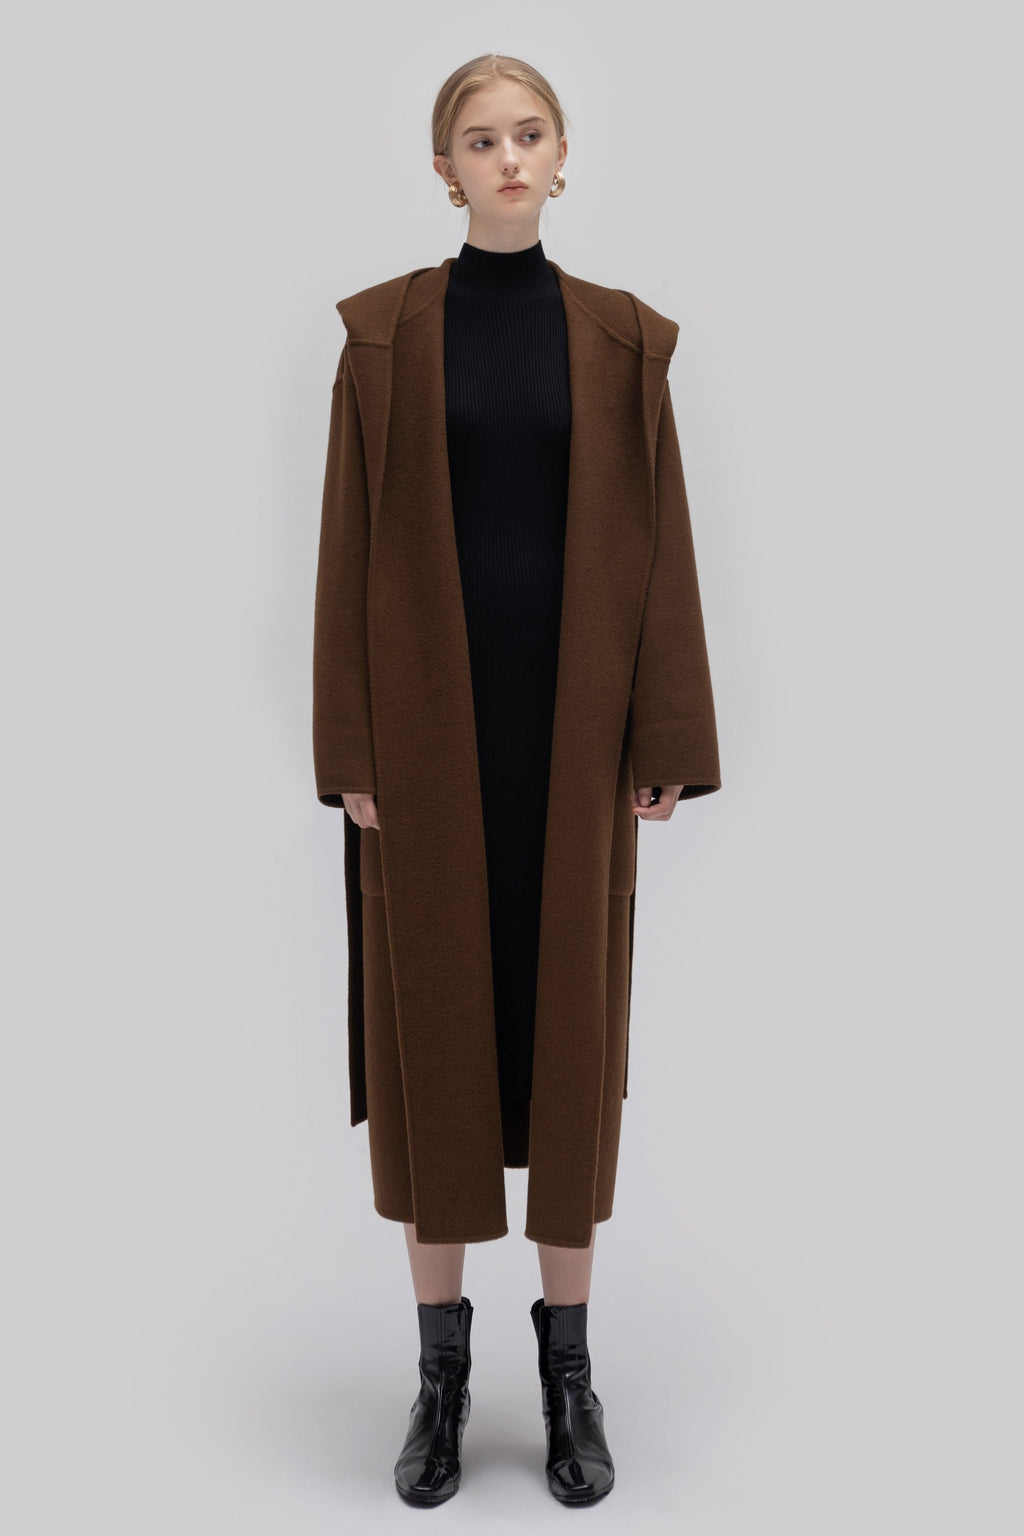 YUEL XIANG oversize hooded coat